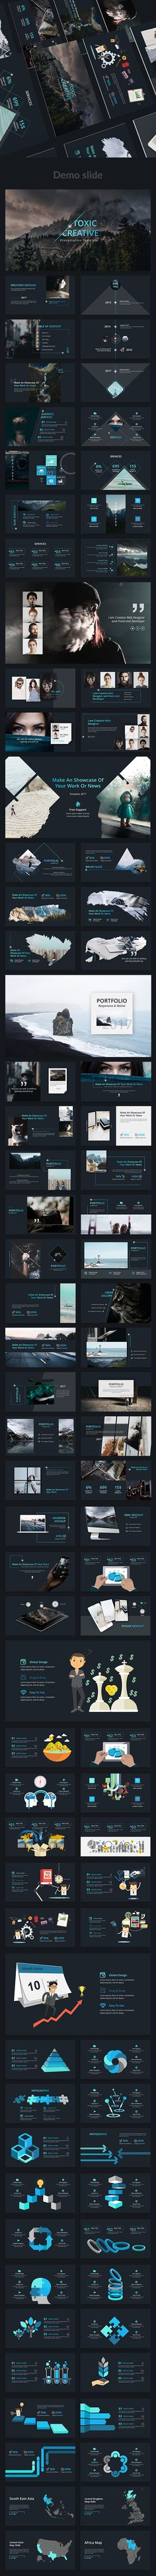 Toxic V2 Creative Powerpoint Template - Creative #PowerPoint Templates